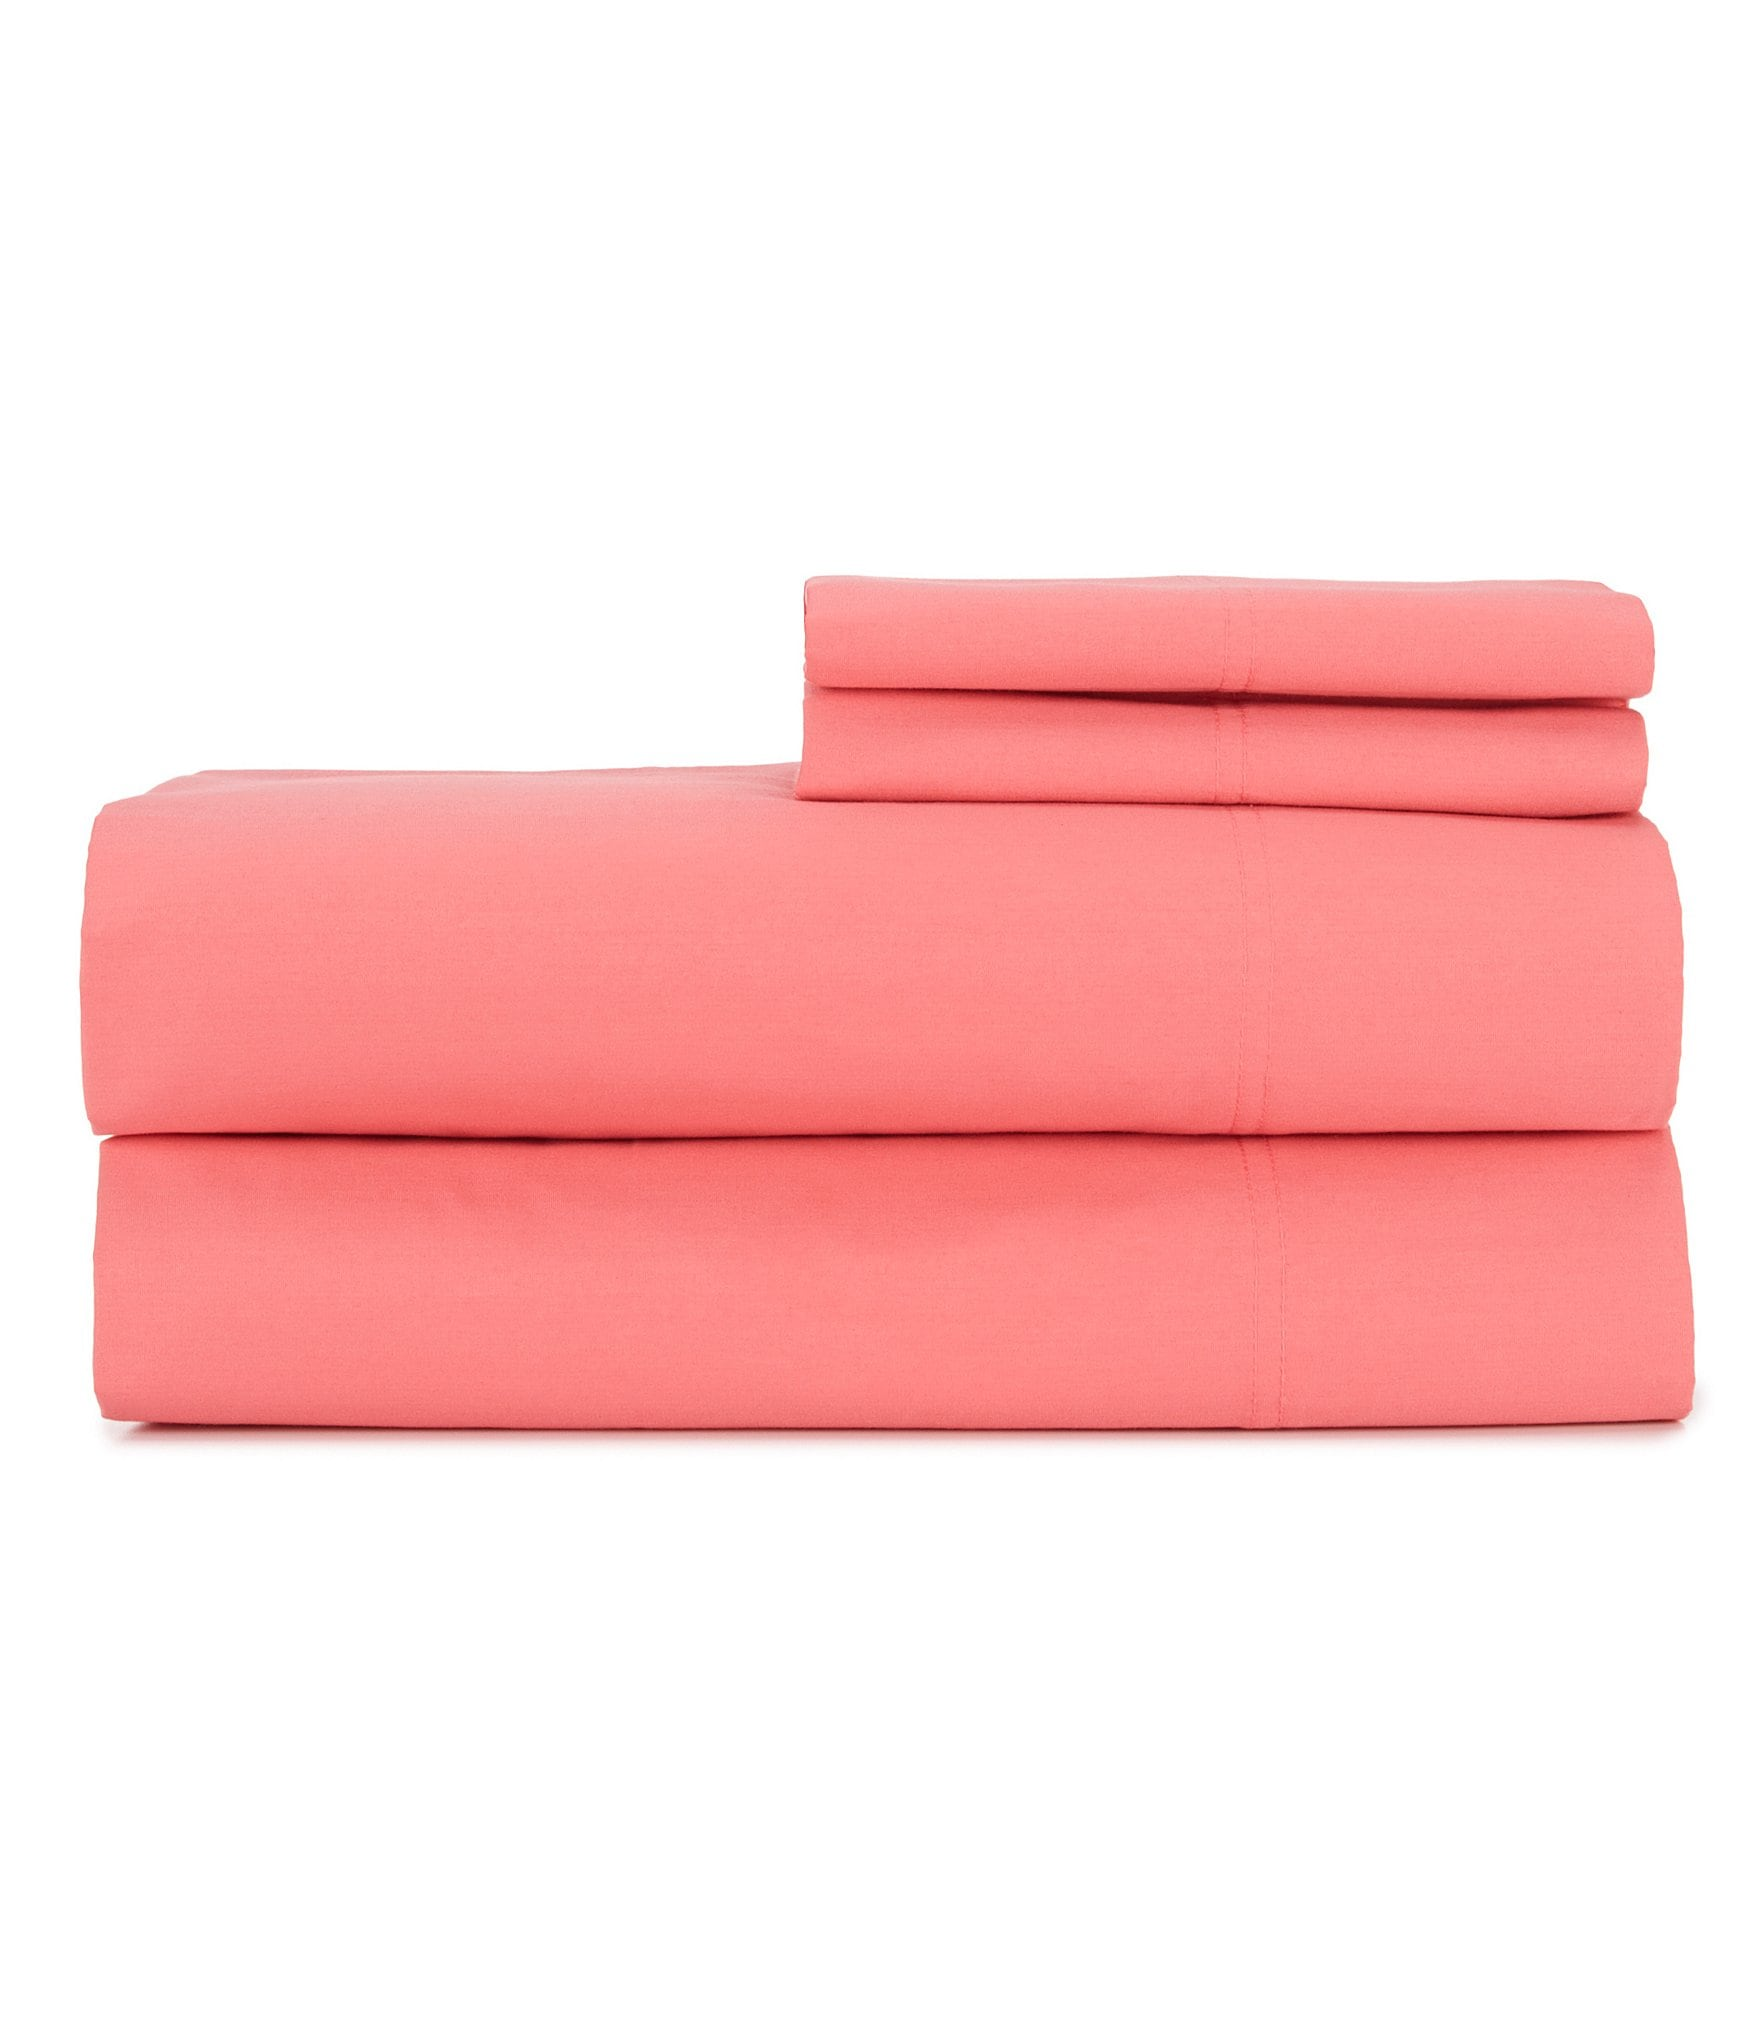 Noble Excellence 300 Thread Count Cotton Percale Sheet Set